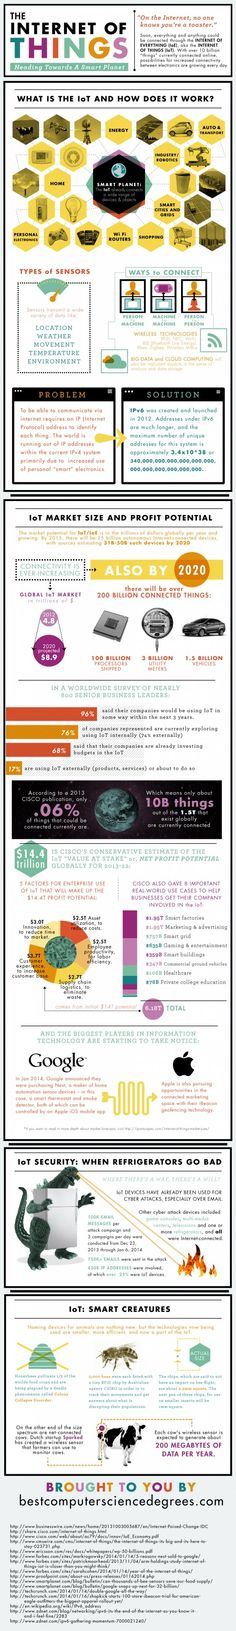 The Internet of Things: Towards a Smart Planet | #Infographic repinned by @Piktochart | Create yours at www.piktochart.com